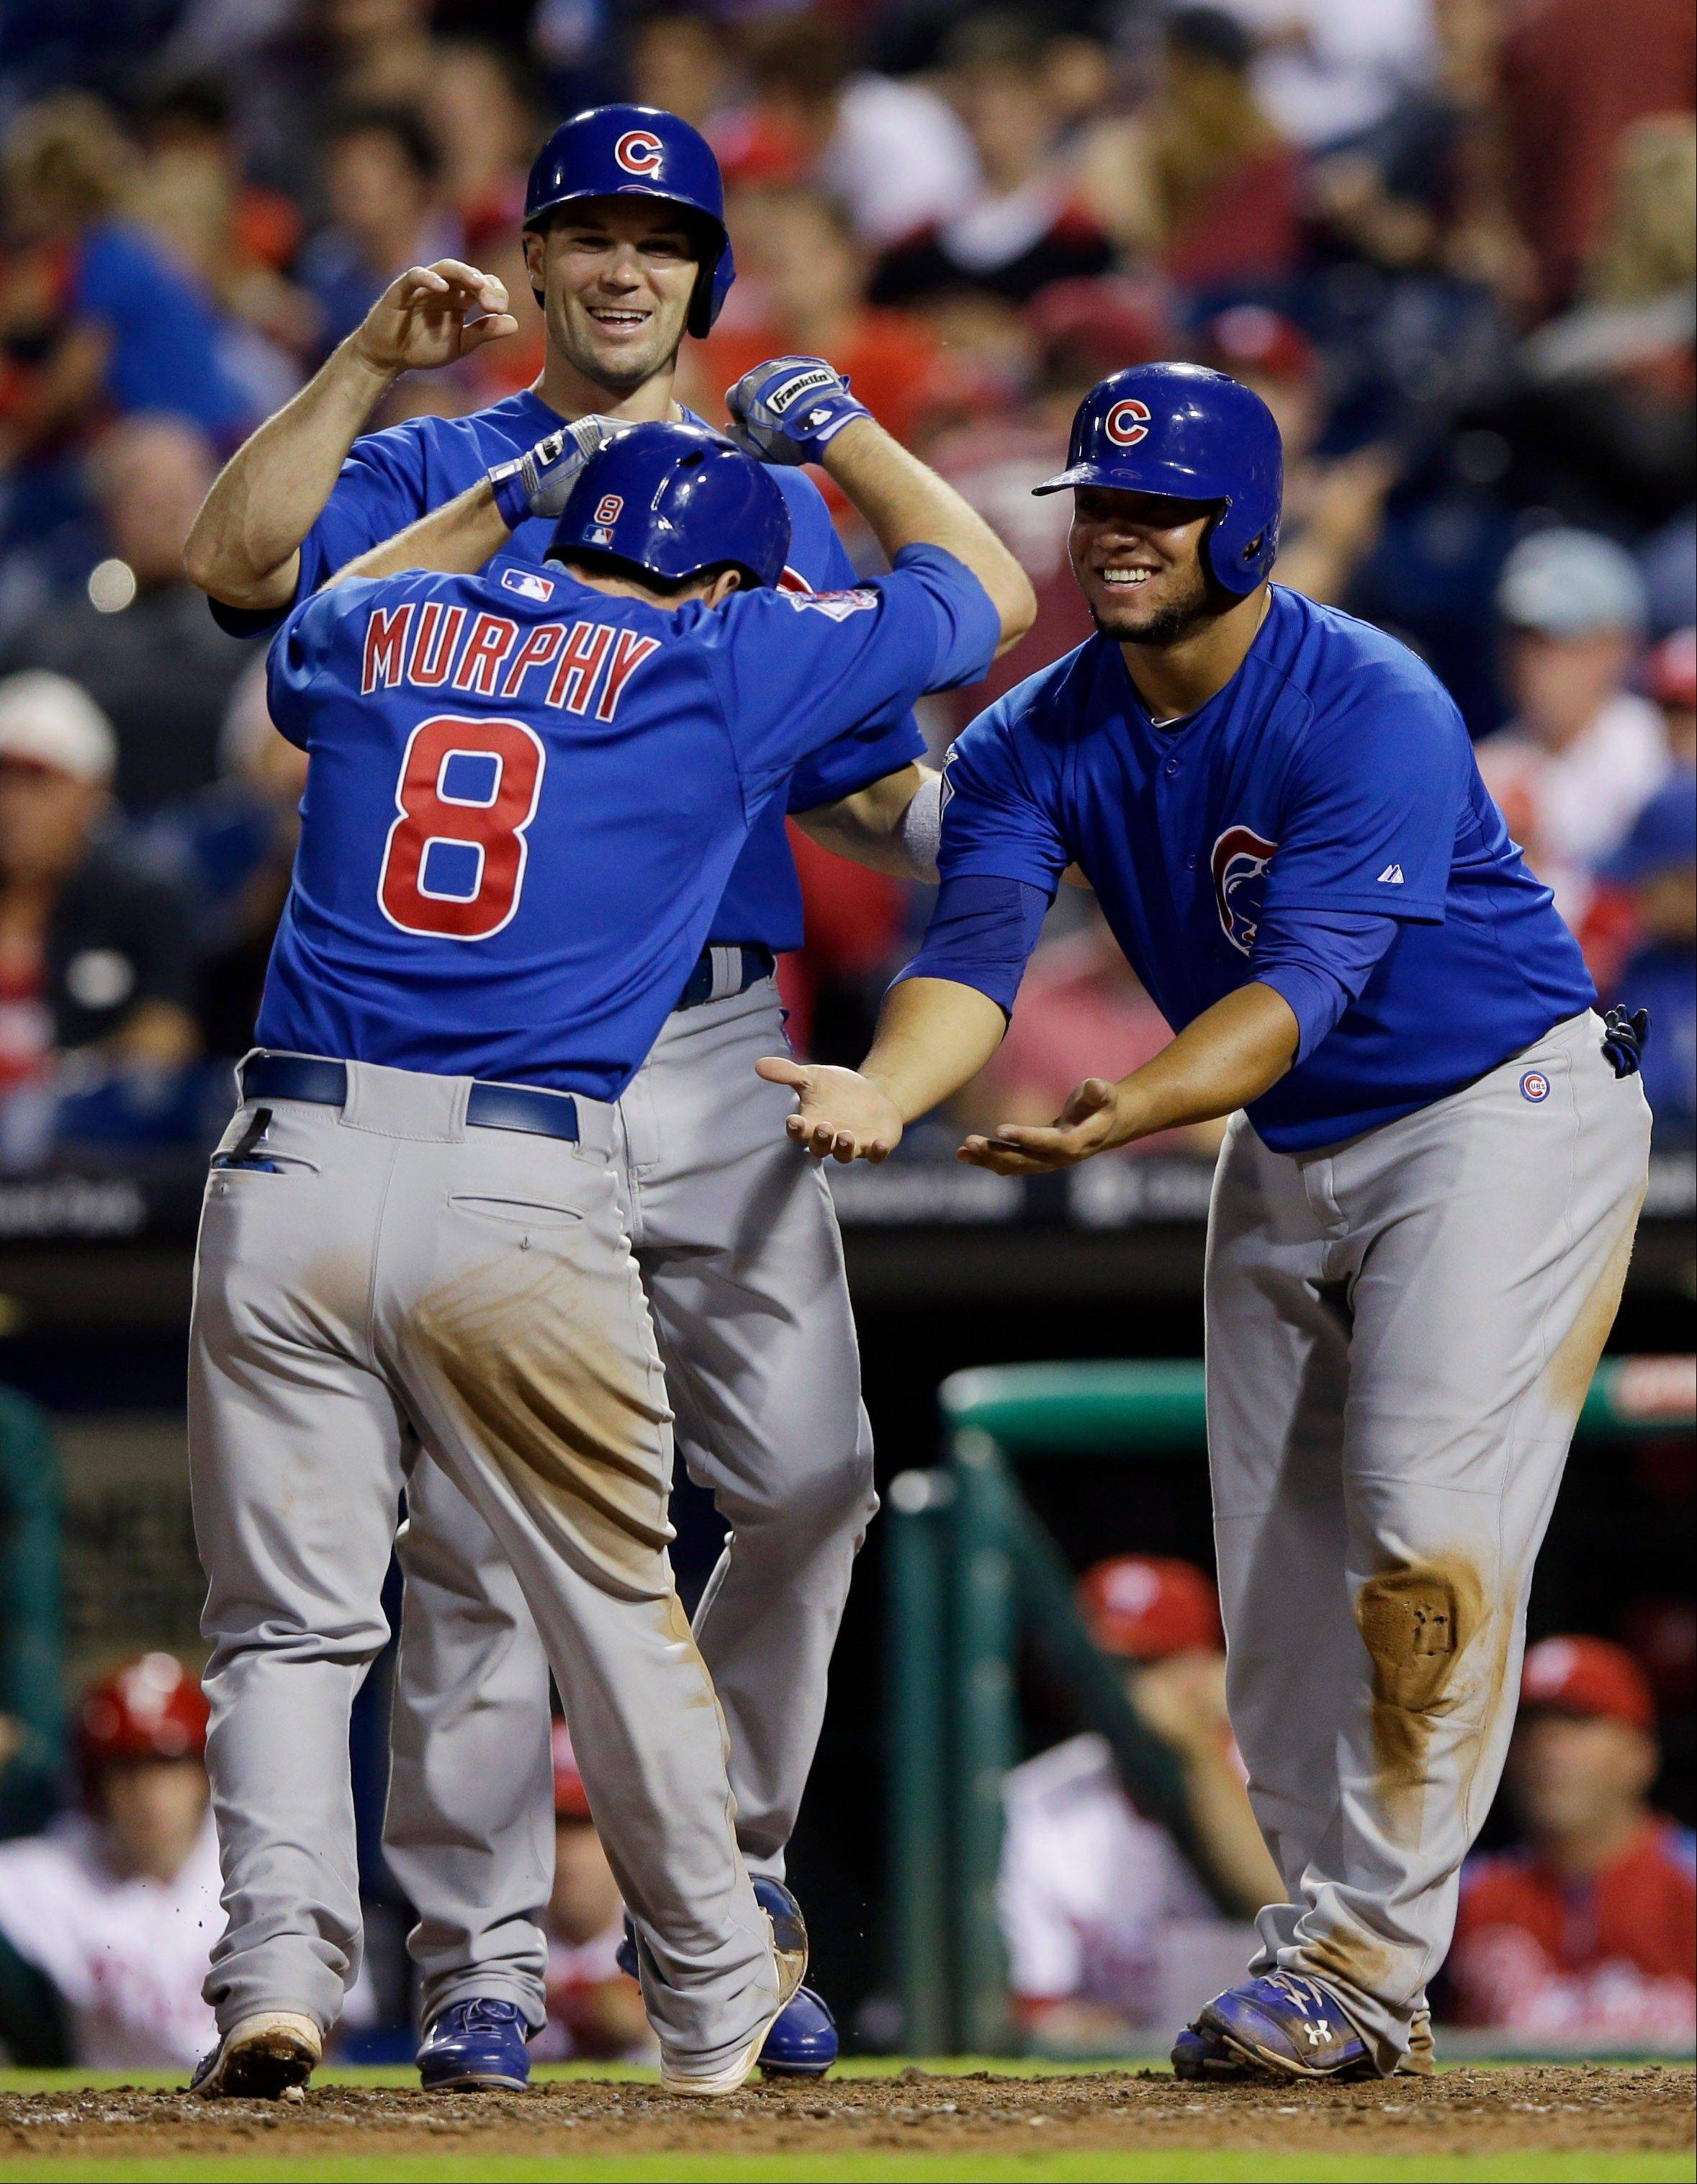 Chicago Cubs' Donnie Murphy, center, celebrates with Cole Gillespie, left, and Welington Castillo after Murphy's three-run home run during the ninth inning of a baseball game against the Philadelphia Phillies, Wednesday, Aug. 7, 2013, in Philadelphia. Chicago won 5-2. (AP Photo/Matt Slocum)